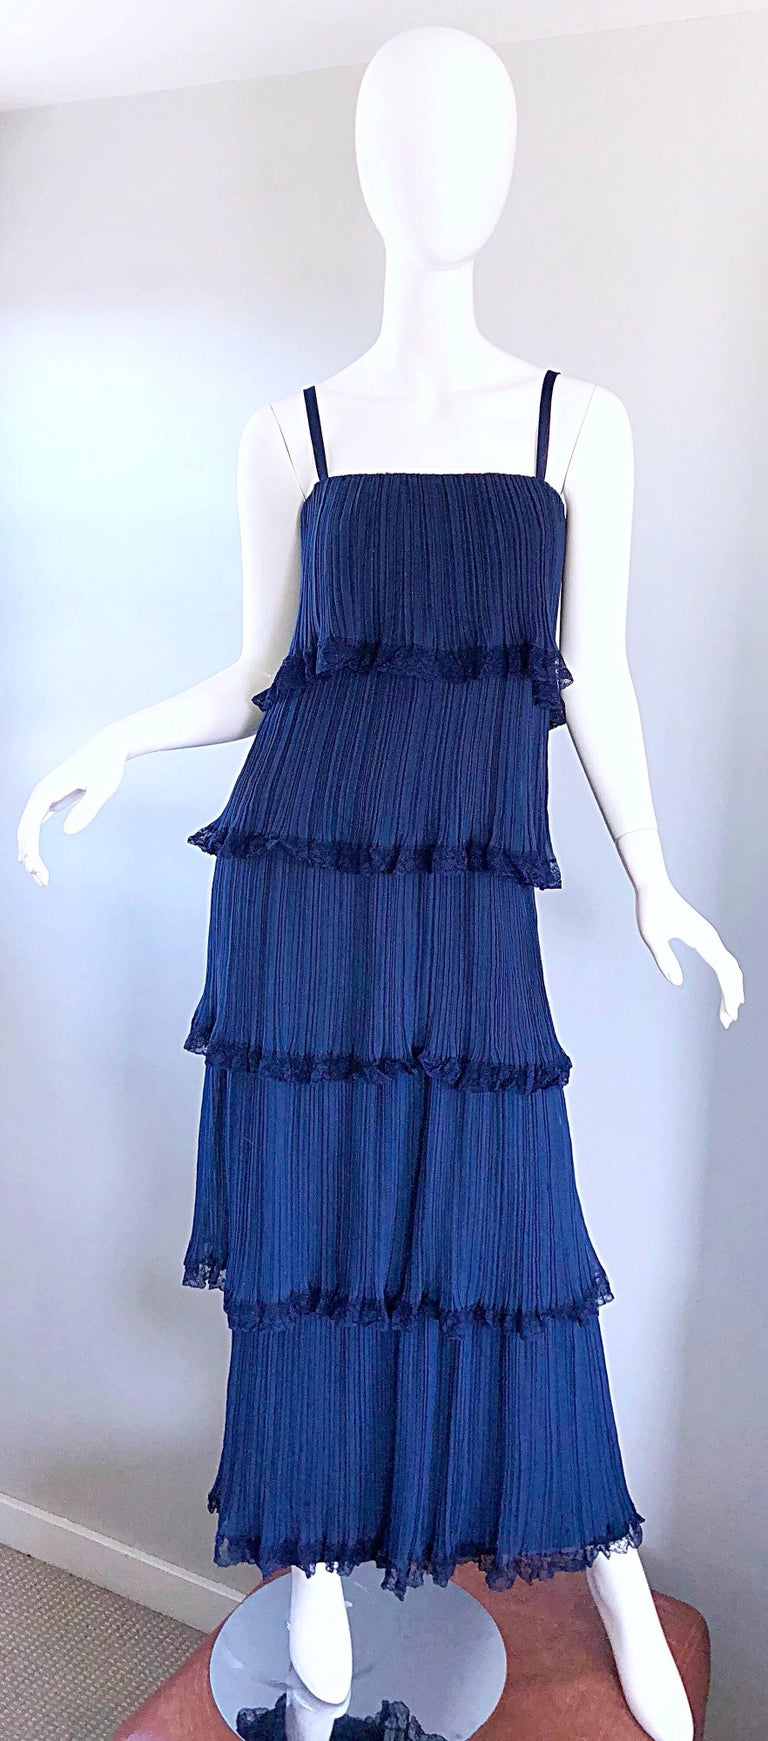 Chic late 1960s BOB BUGNARD COUTURE navy blue silk chiffon accordian pleated tiered full length evening gown / maxi dress! Features intricate accordian pleated chiffon tiers. Navy blue lace trim. Full metal zipper up the back with hook-and-eye